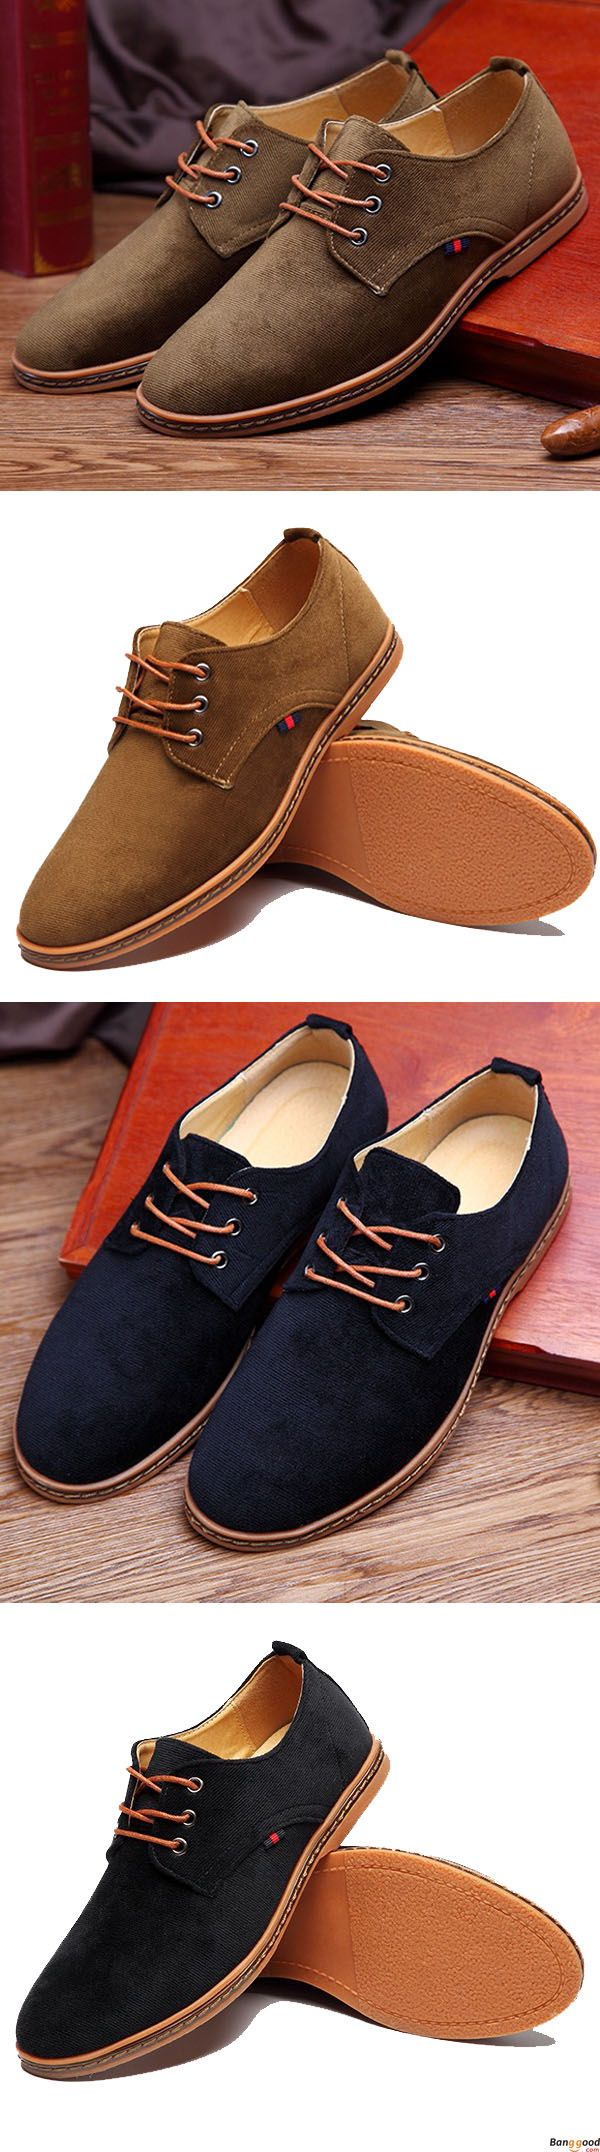 US$38.62+ Free Shipping Men comfortable lace up loafers. 3 colors available. size: us6.5~us12. fashion and chic. Men's shoes,men's loafers,loafers, oxford shoes,men's oxford shoes,casual shoes men's style, chic style, fashion style. Shop at banggood with super affordable price. #men'sshoes#men'sstyle#chic#style#fashion#style#wintershoes#casual#shoes#loafers#men'sloafers#oxfordshoes#men'soxfordshoes